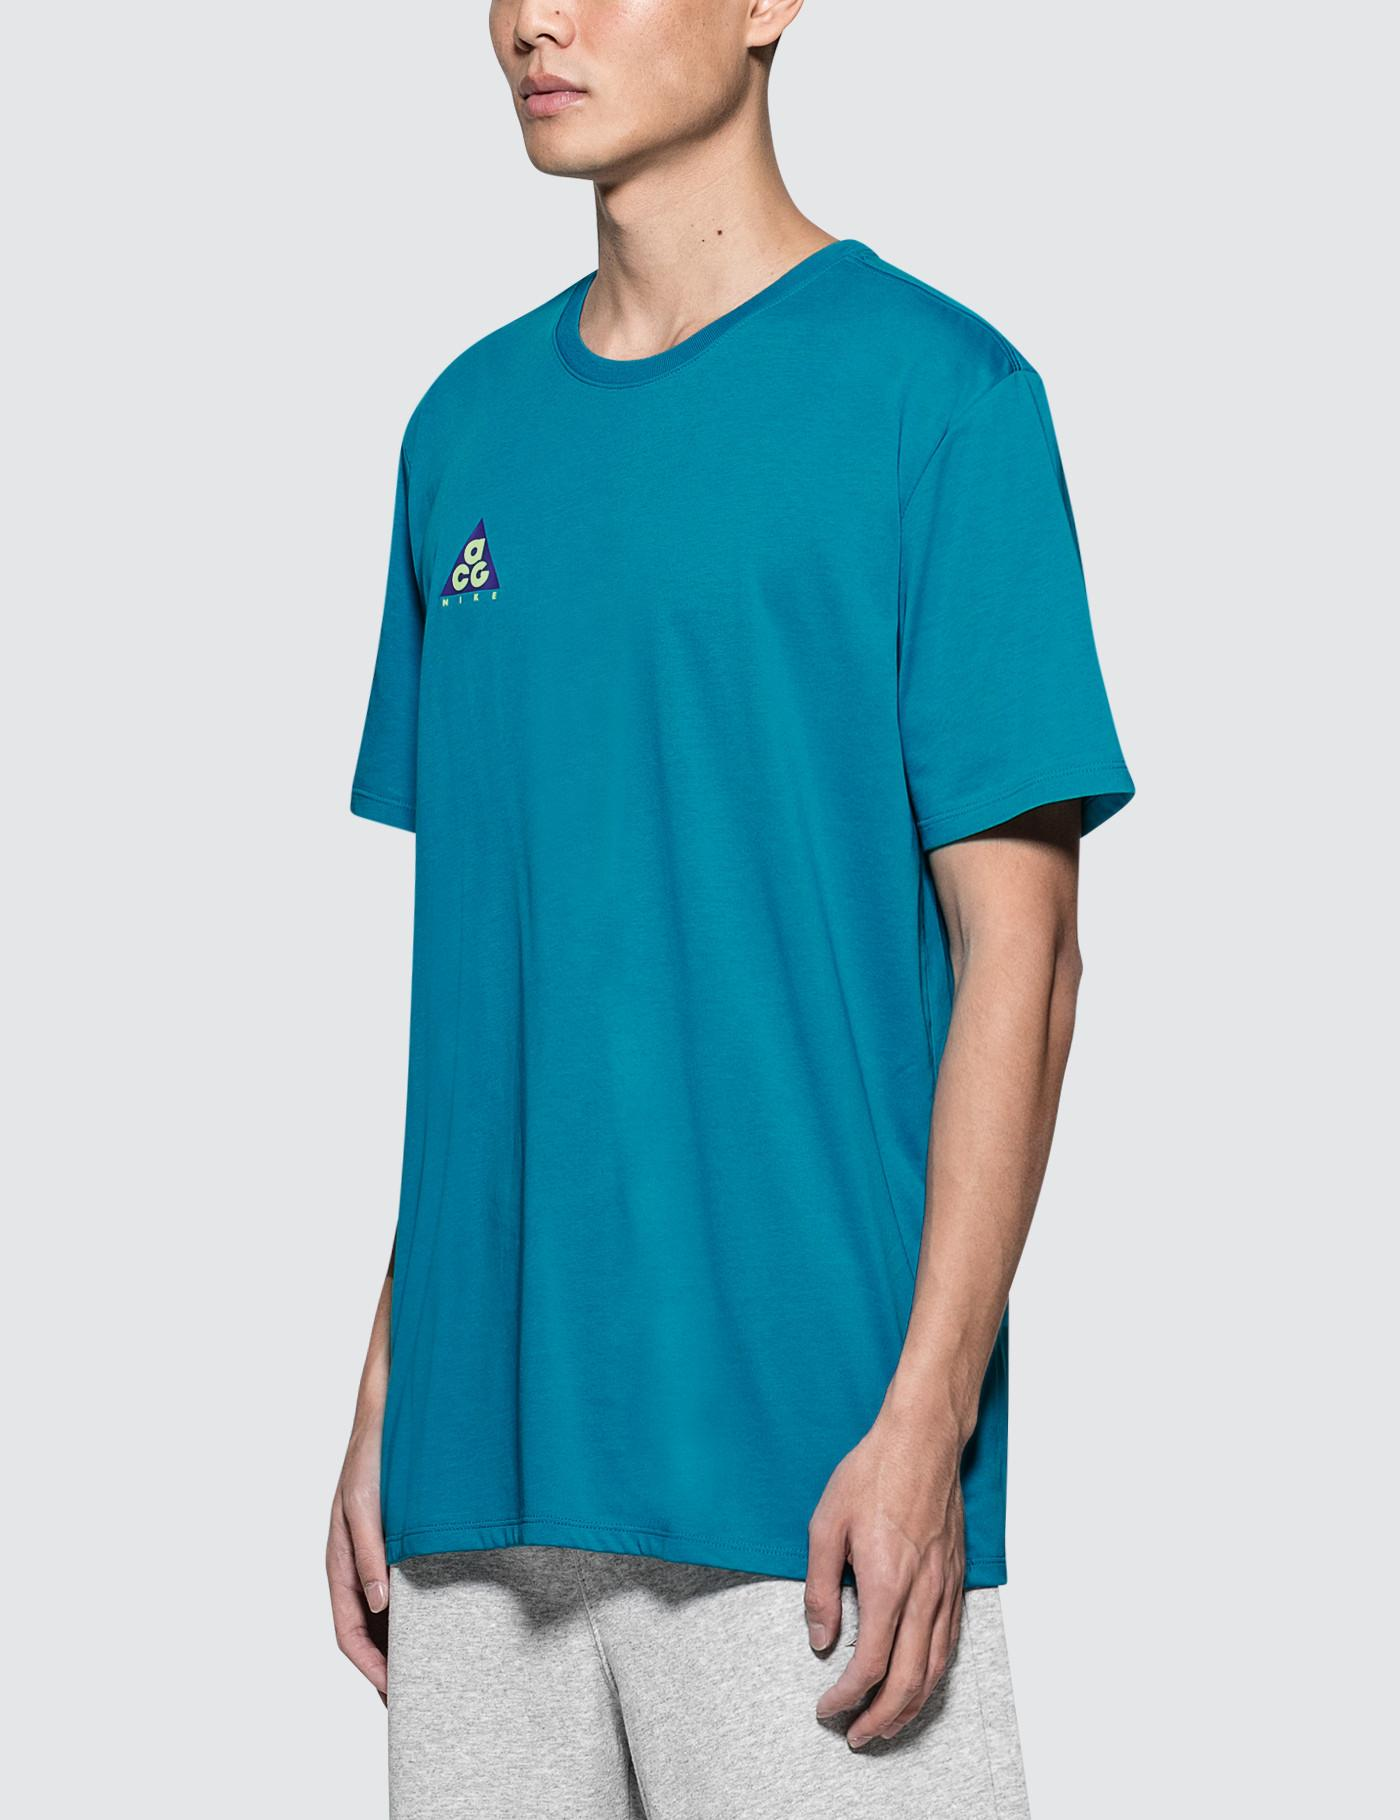 competitive price 471c3 c6baf Lyst - Nike M Nsw T-shirt Cltr Acg 2 in Blue for Men